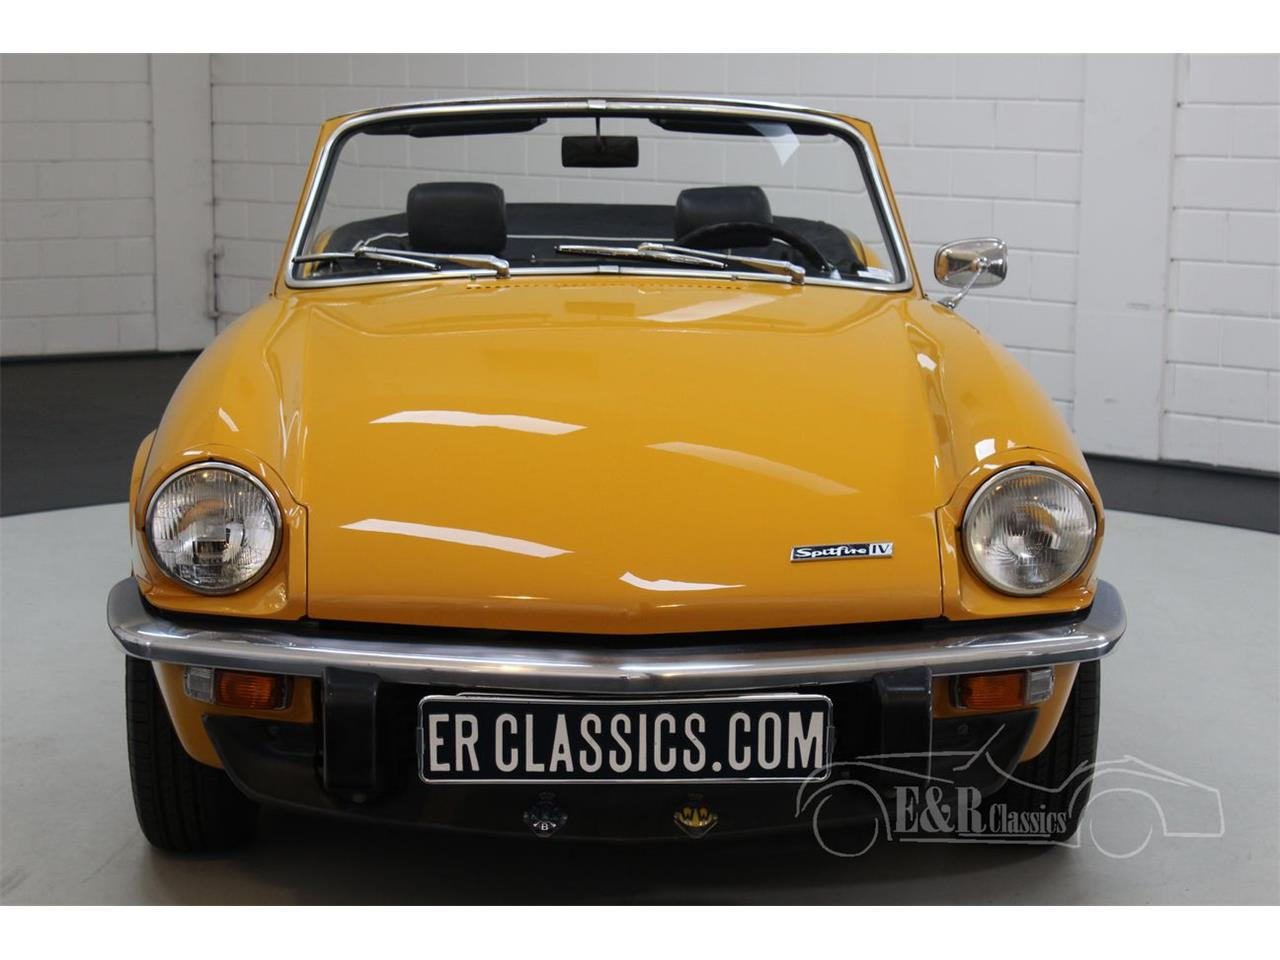 Large Picture of '74 Spitfire - $16,850.00 Offered by E & R Classics - QIIQ